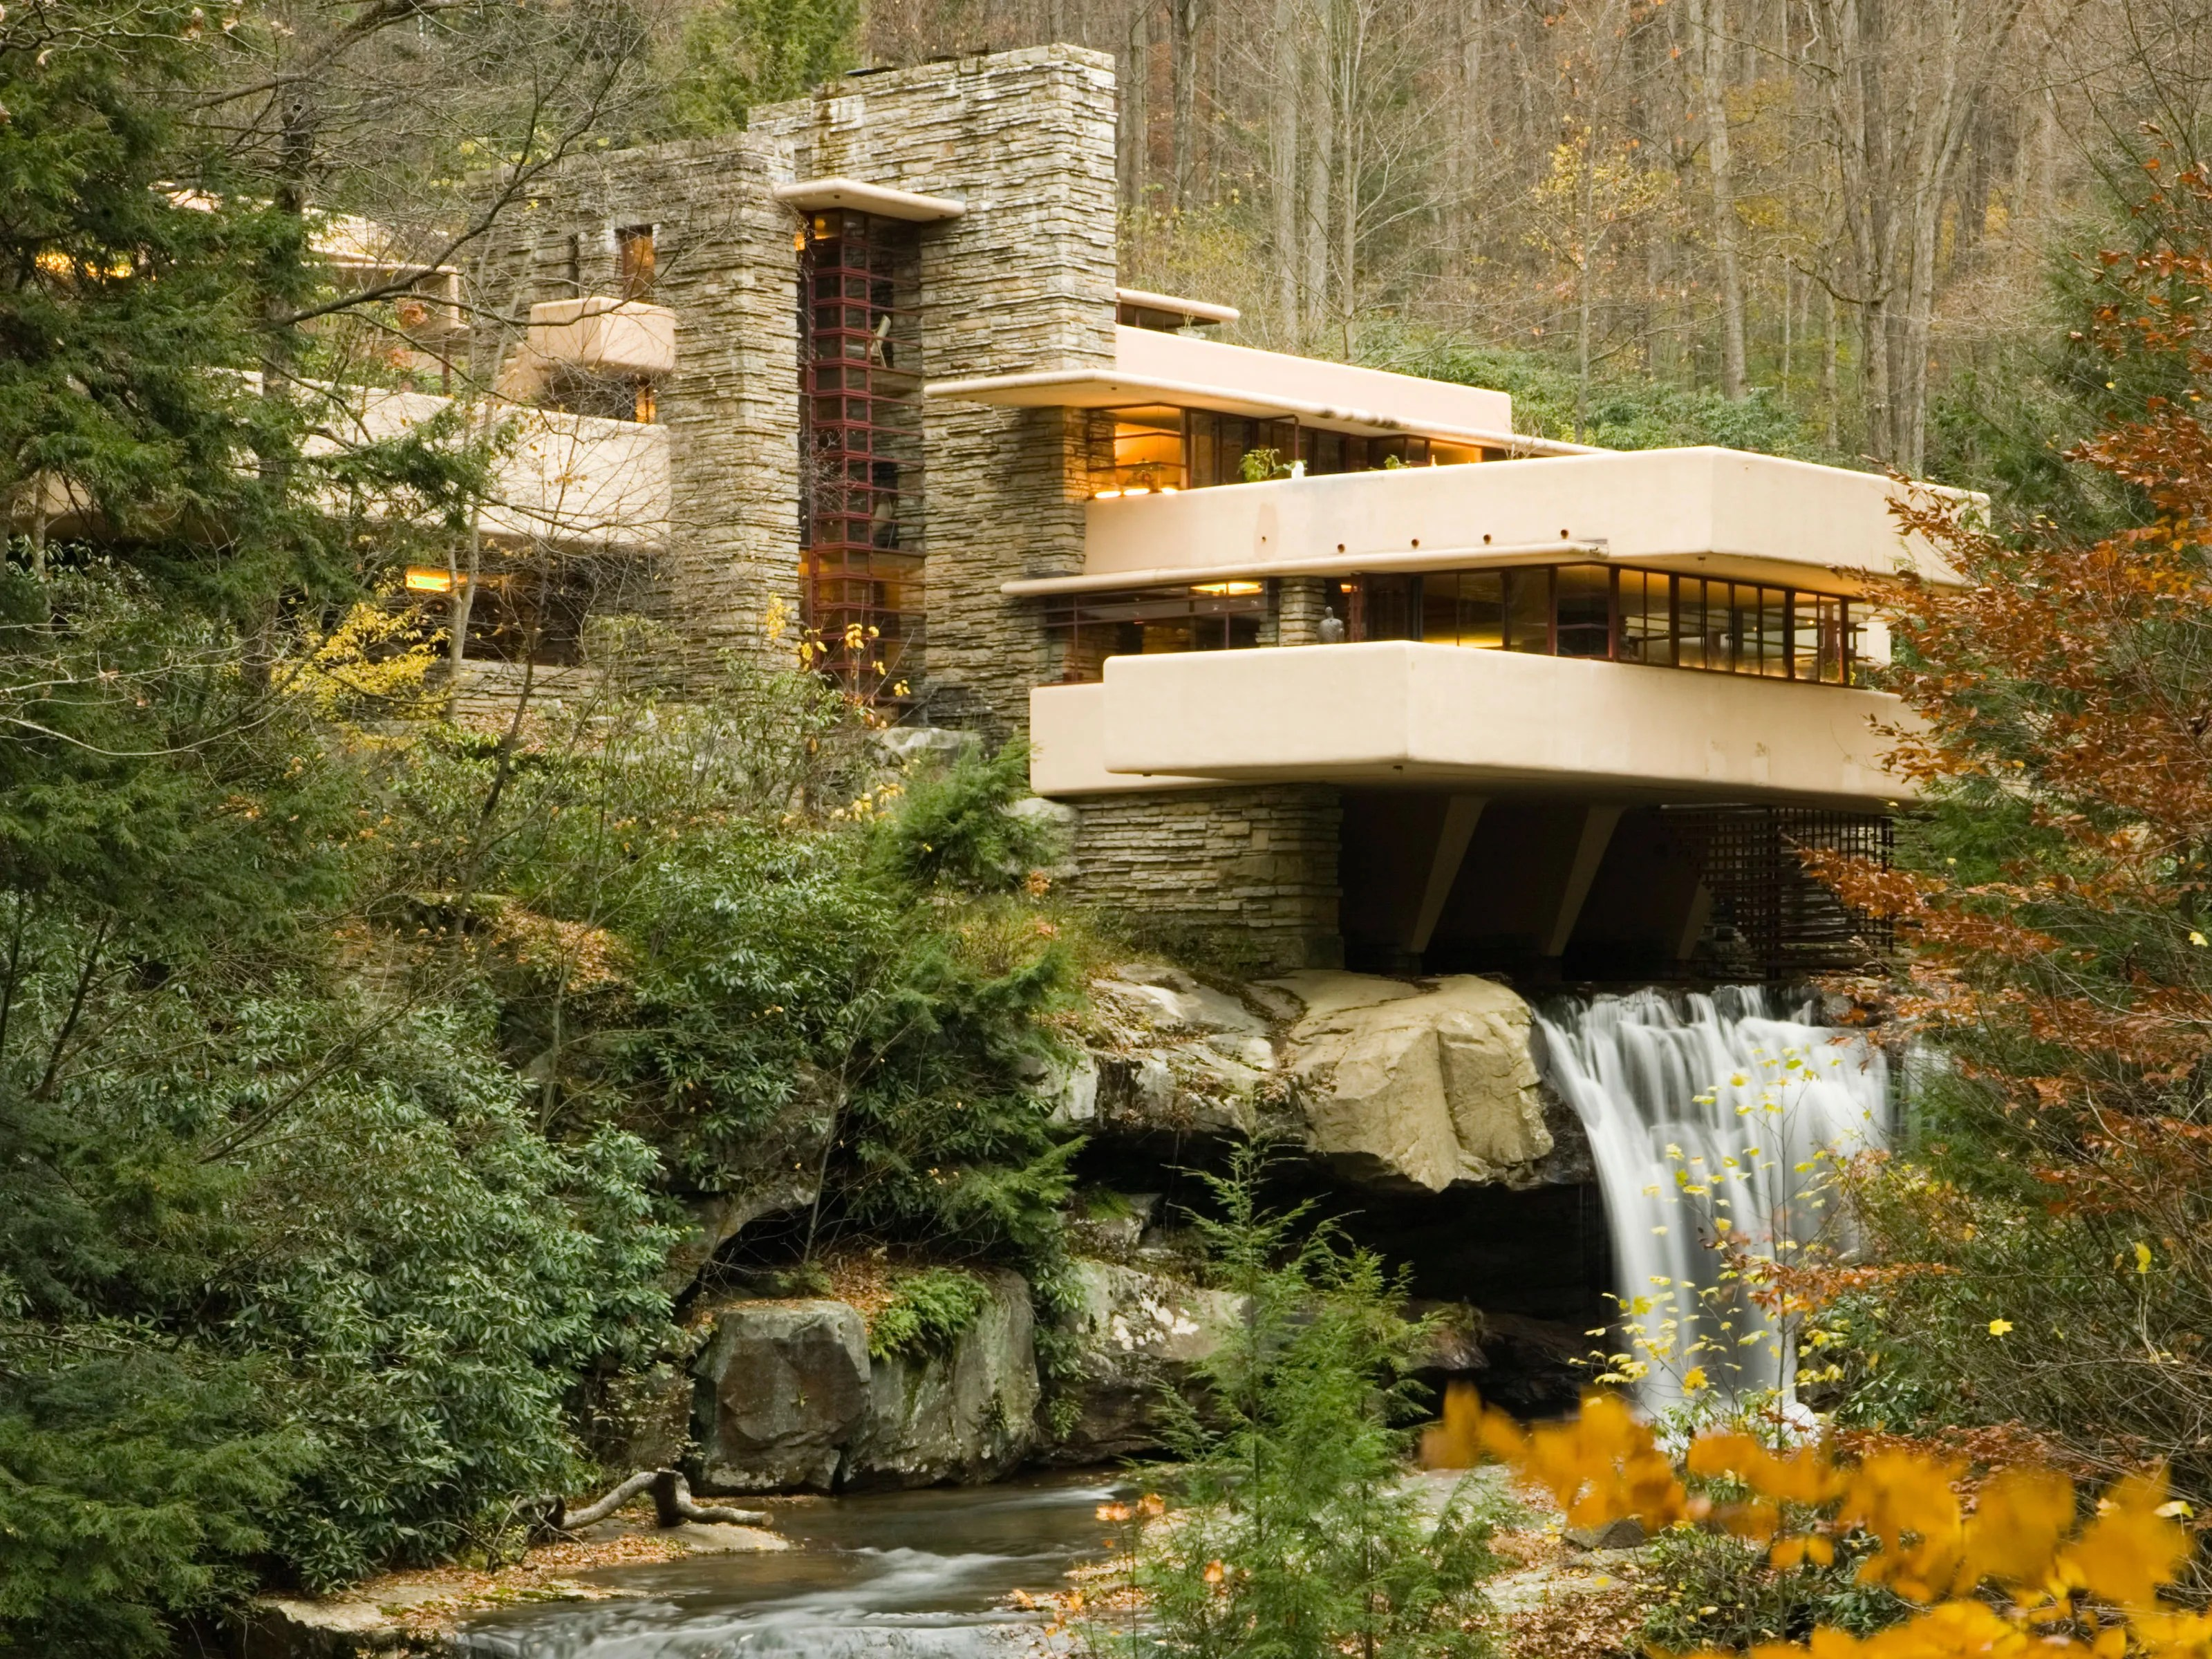 American Paint And Wallpaper Fall River Flood Causes Damage At Frank Lloyd Wright S Fallingwater